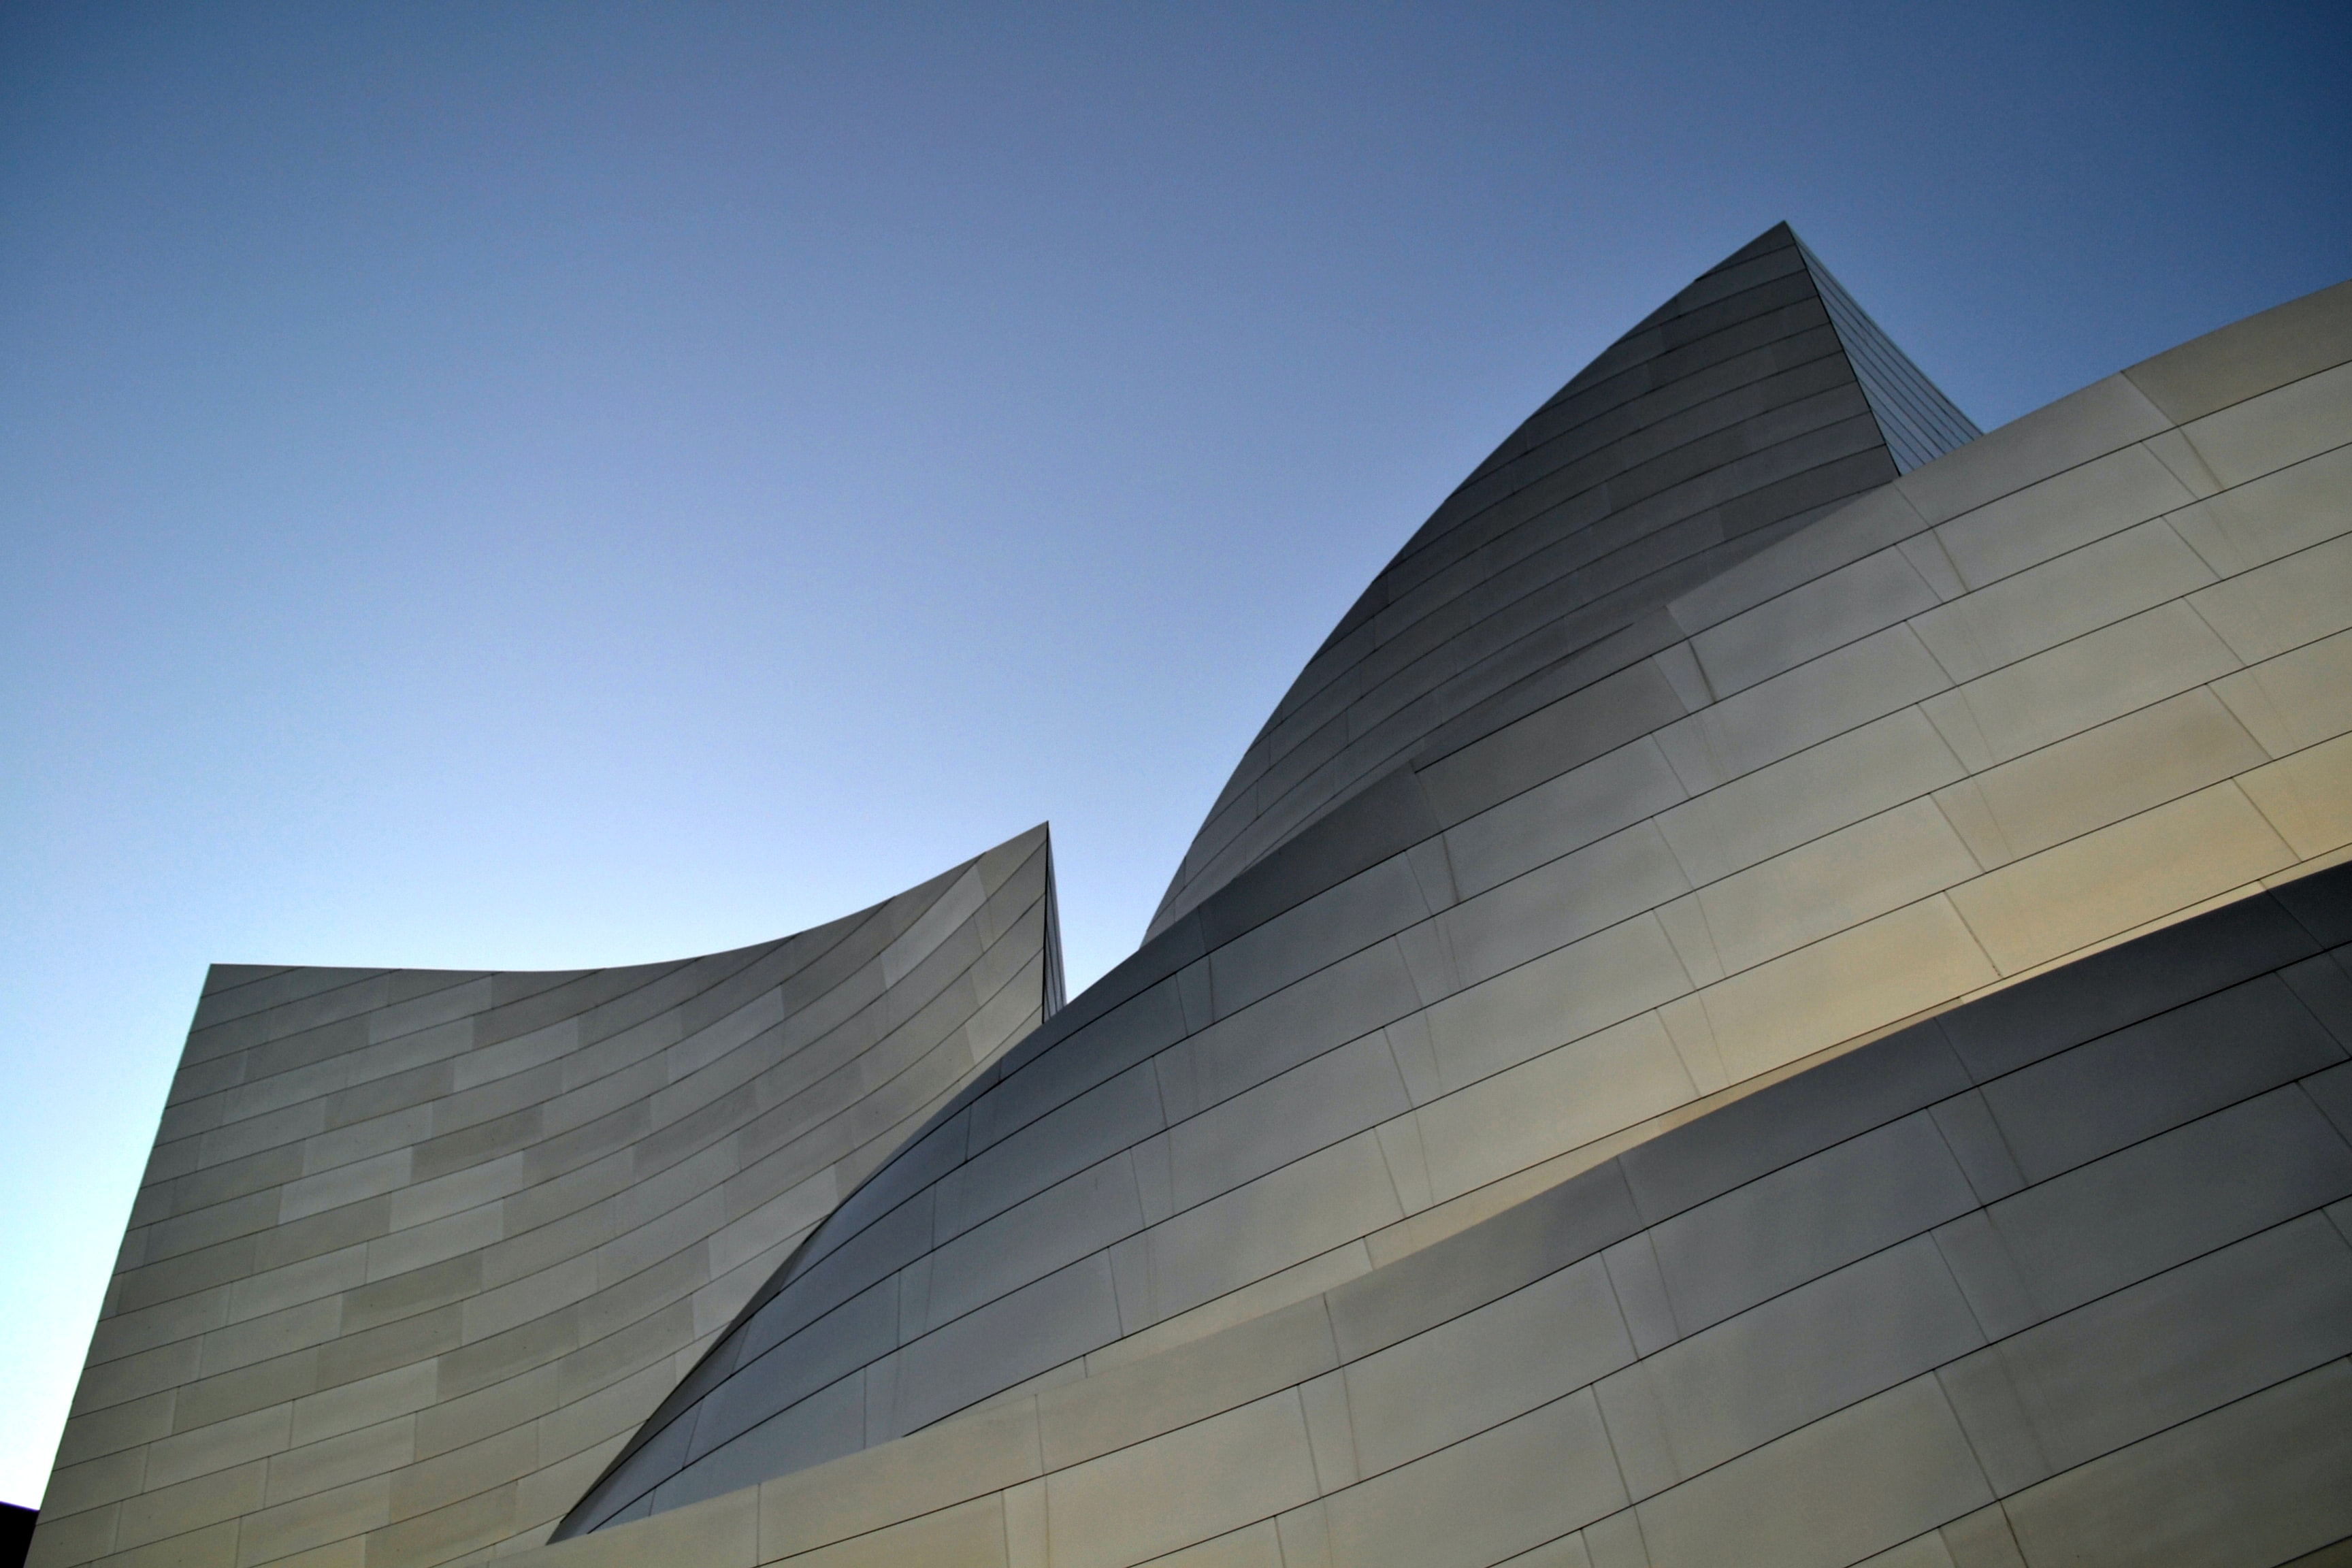 Steel panels in the postmodern facade of the Walt Disney Concert Hall